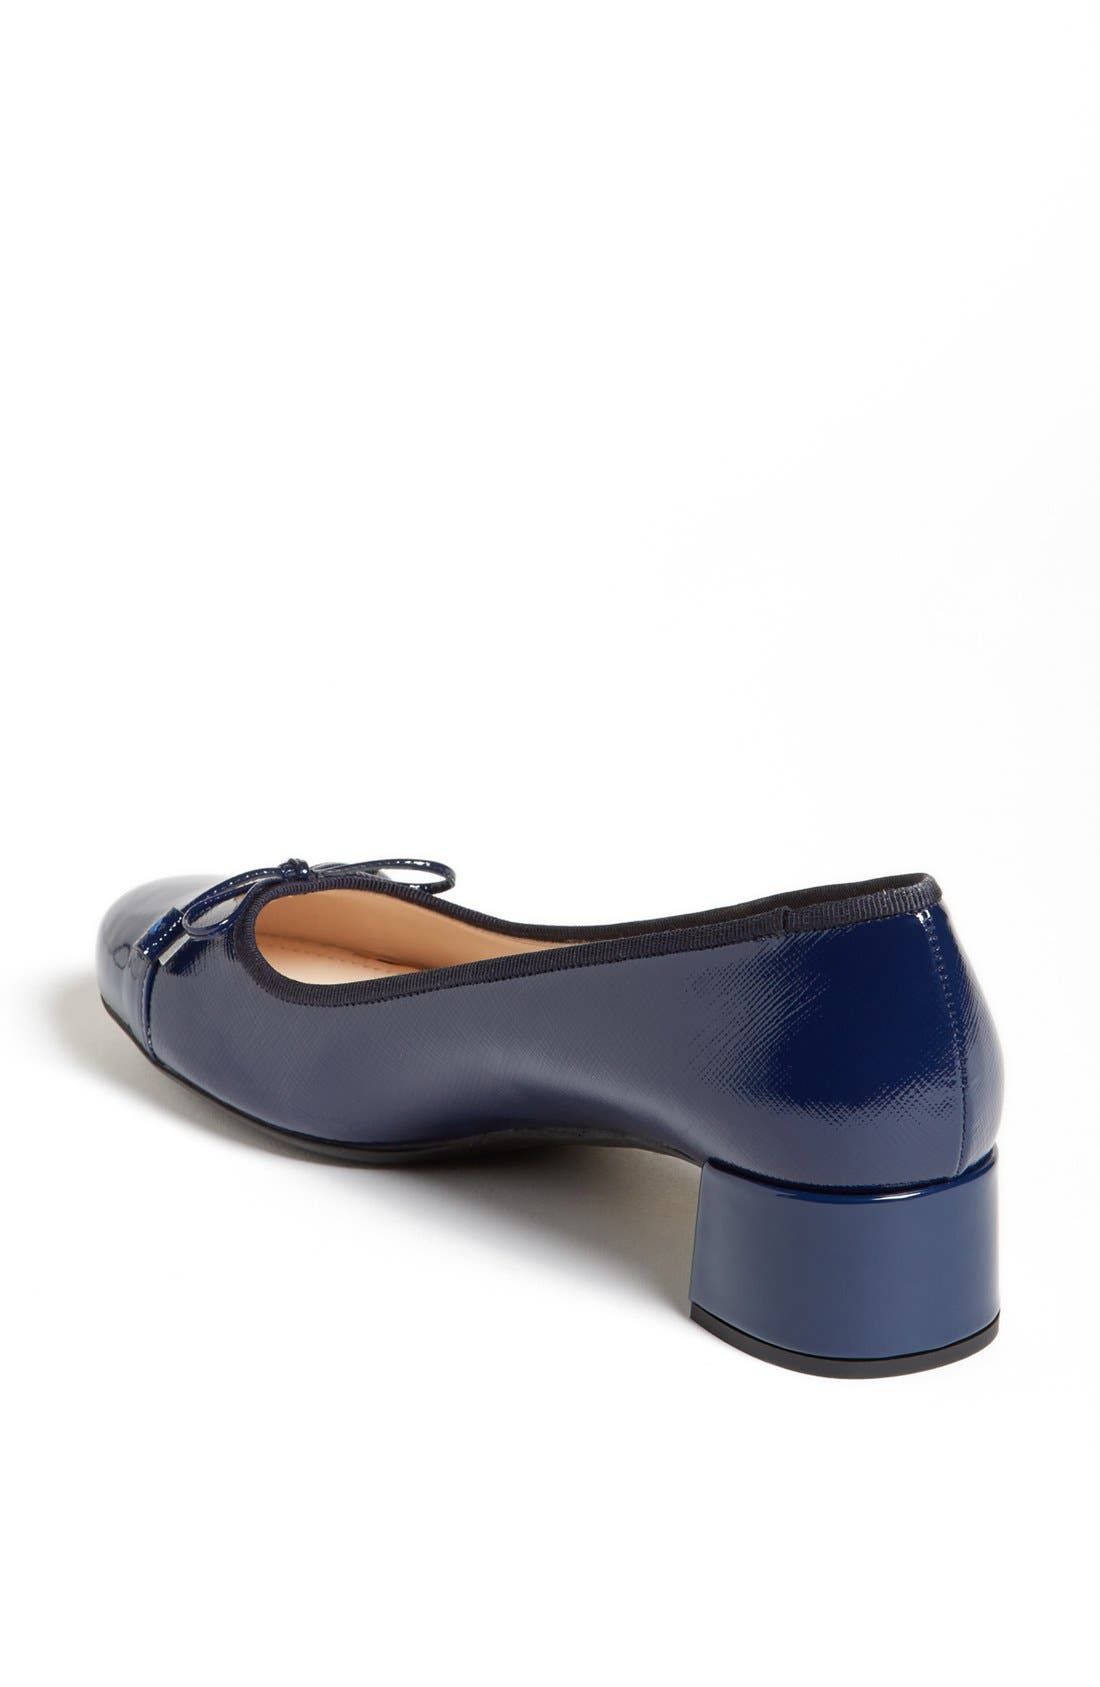 Alternate Image 2  - Prada Round Cap Toe Pump